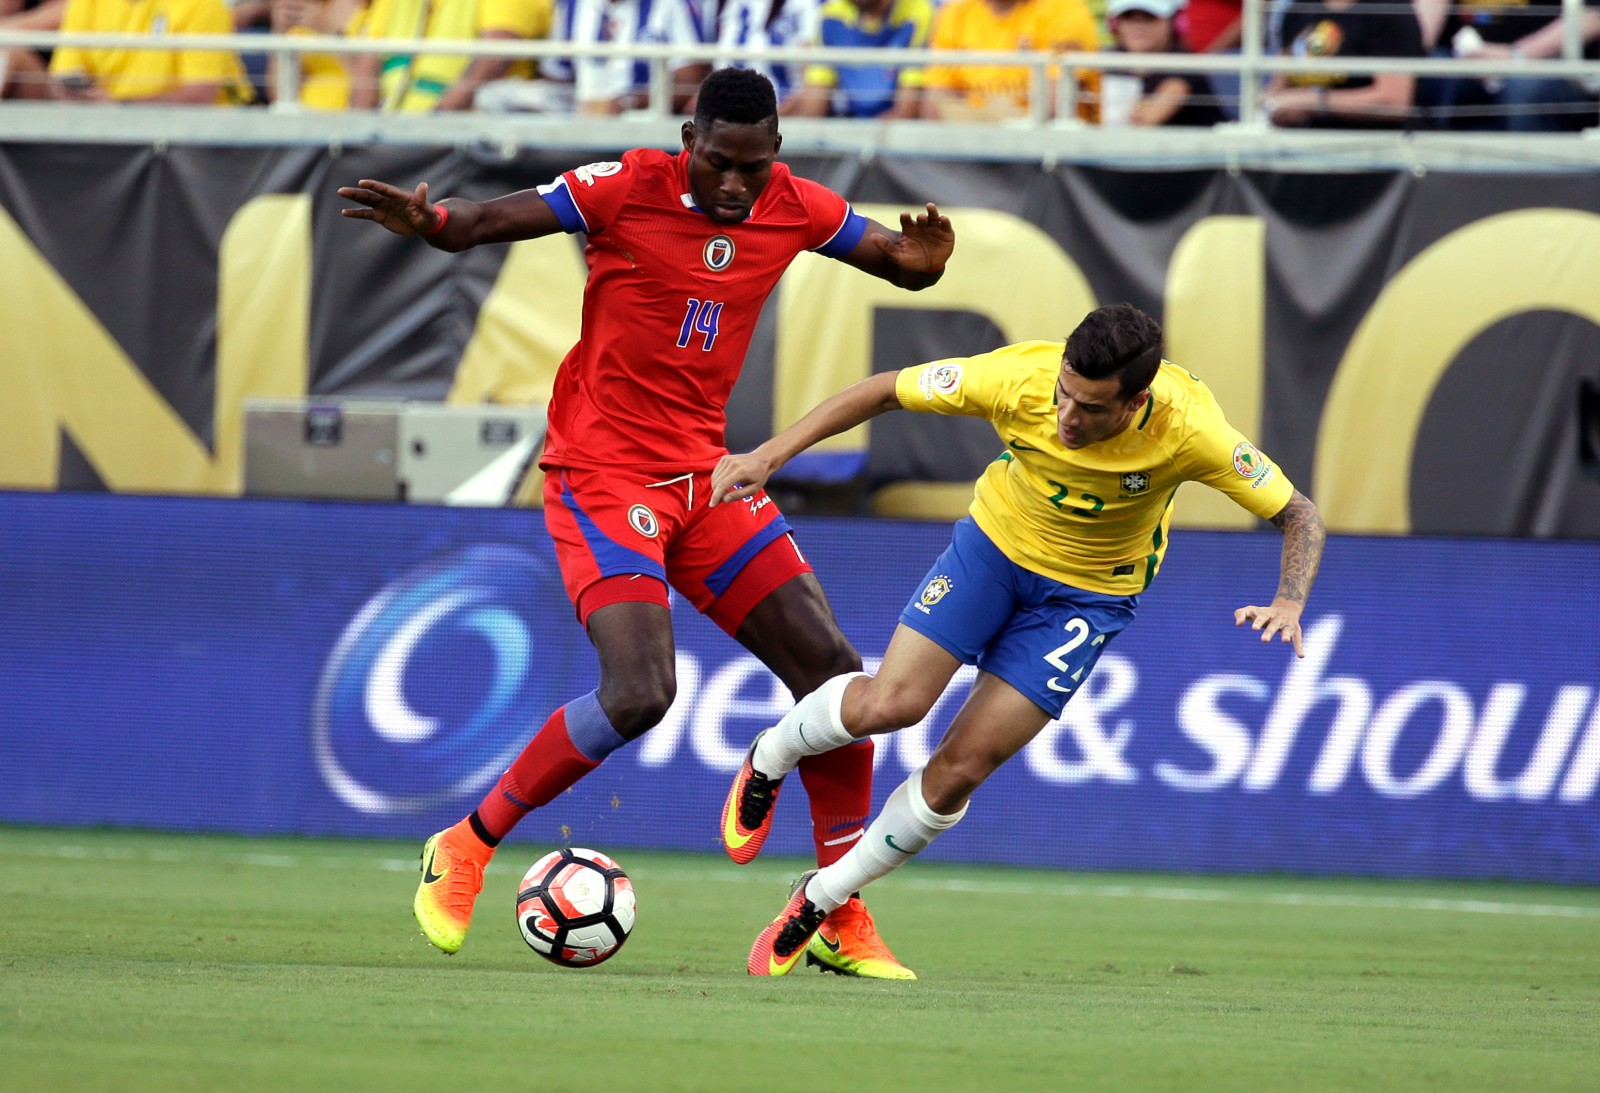 Haiti's James Marcelin (14) and Brazil's Philippe Coutinho (22) collide while going for the ball during the first half of a Copa America group B soccer match at Camping World Stadium, Wednesday, June 8, 2016, in Orlando, Fla. (AP Photo/John Raoux)